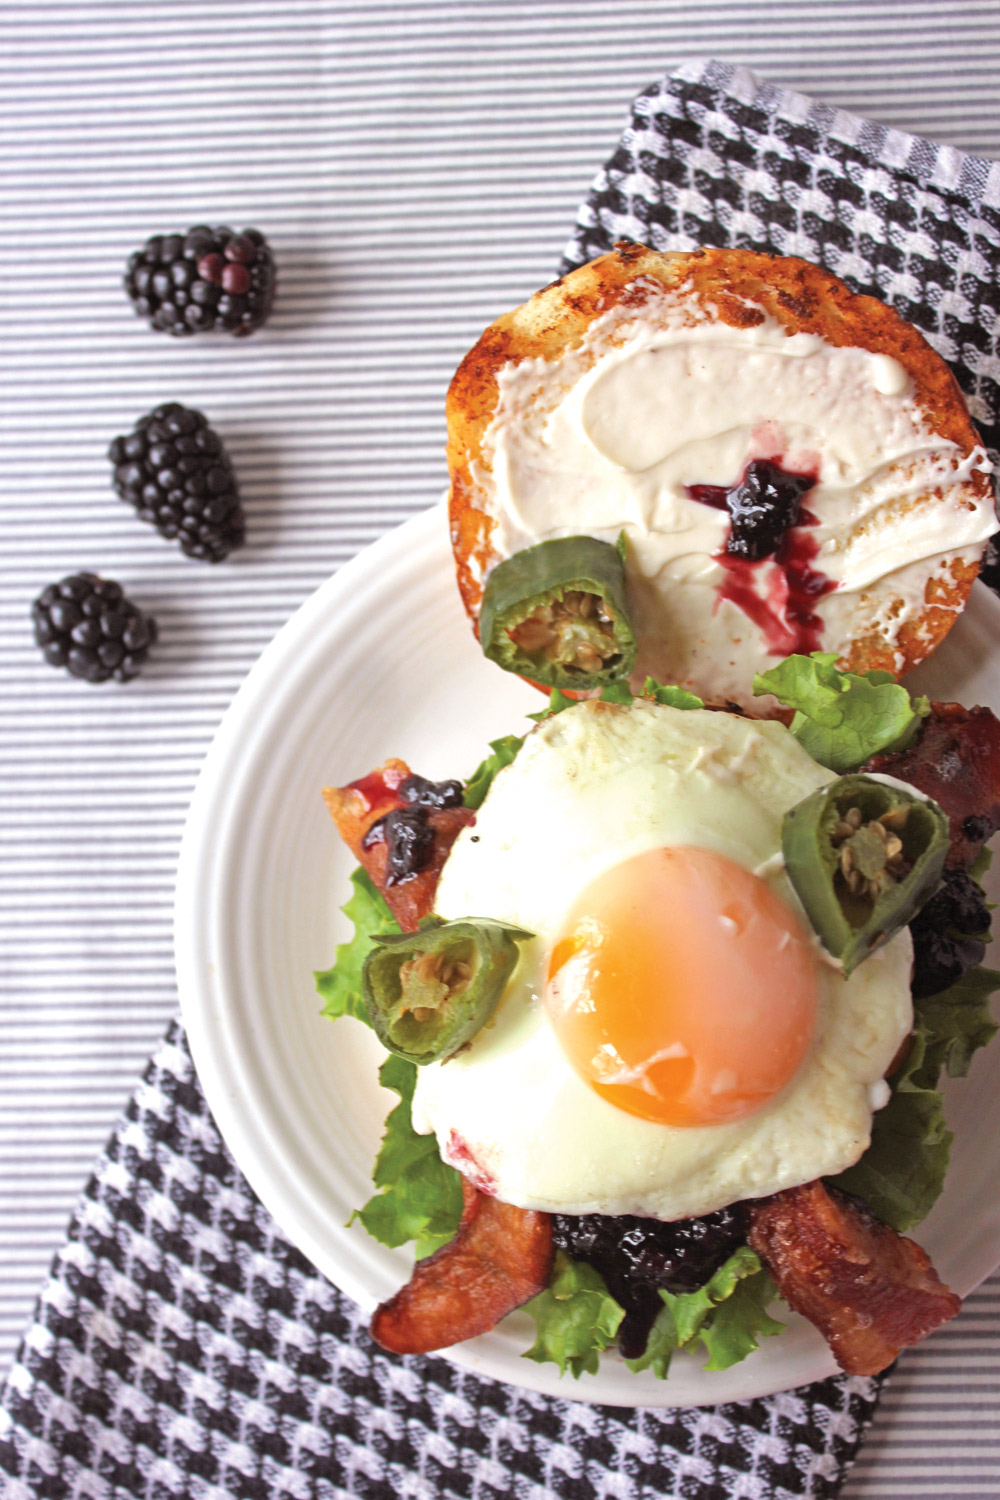 Overhead view of burger with sunny side up egg, ackberry jam, jalepenos, and lettuce with blackberries on side